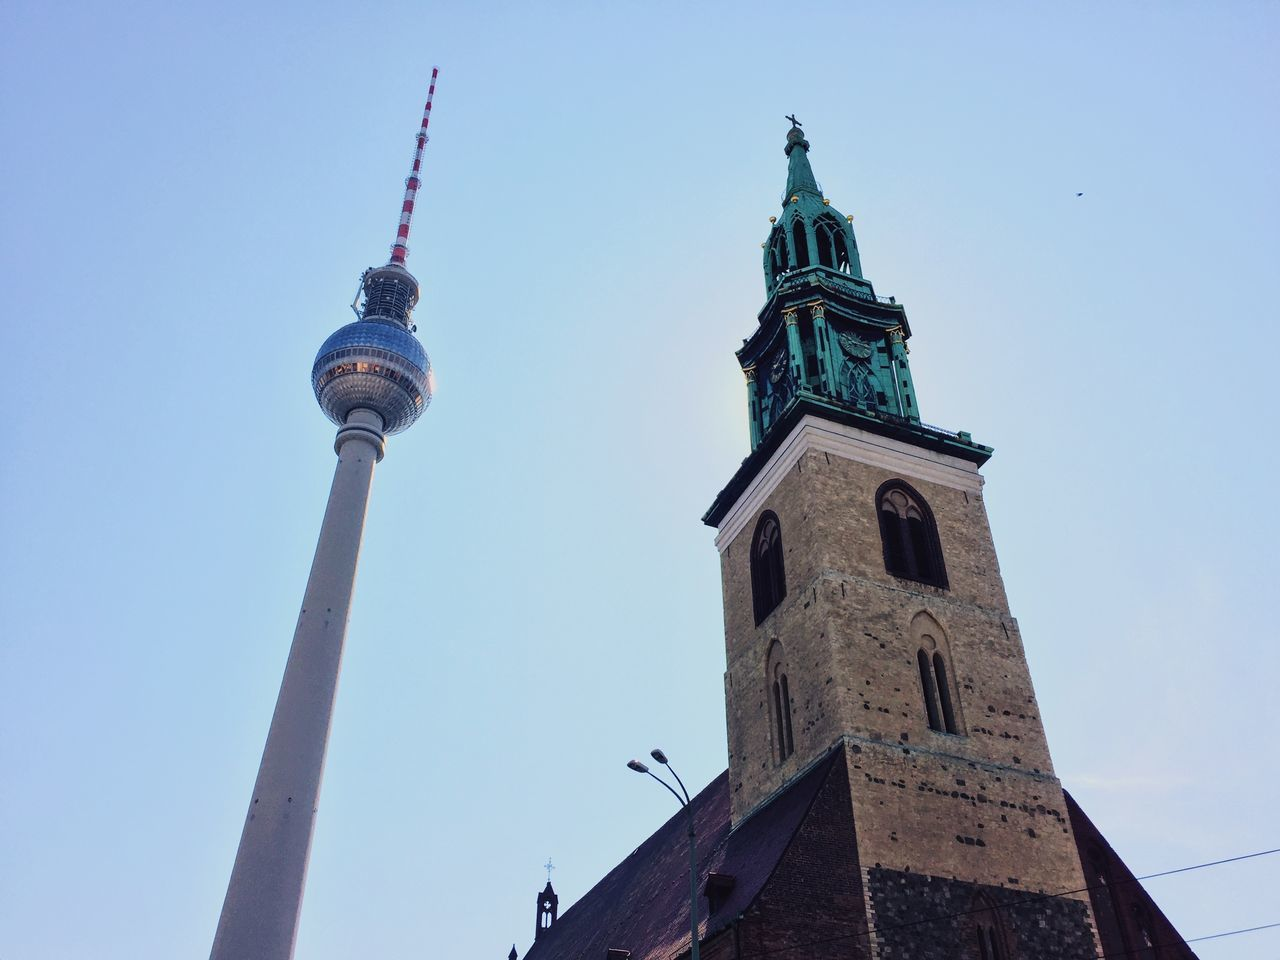 Alex lookup. Architecture Berlin Berlin Mitte Berlin Photography Berliner Ansichten Blue Church City City City Life Cityscapes Clear Sky Clock Tower Day Fernsehturm Fernsehturm Berlin  Low Angle View No People Outdoors Sky Sun Tower Travel Travel Destinations TV Tower